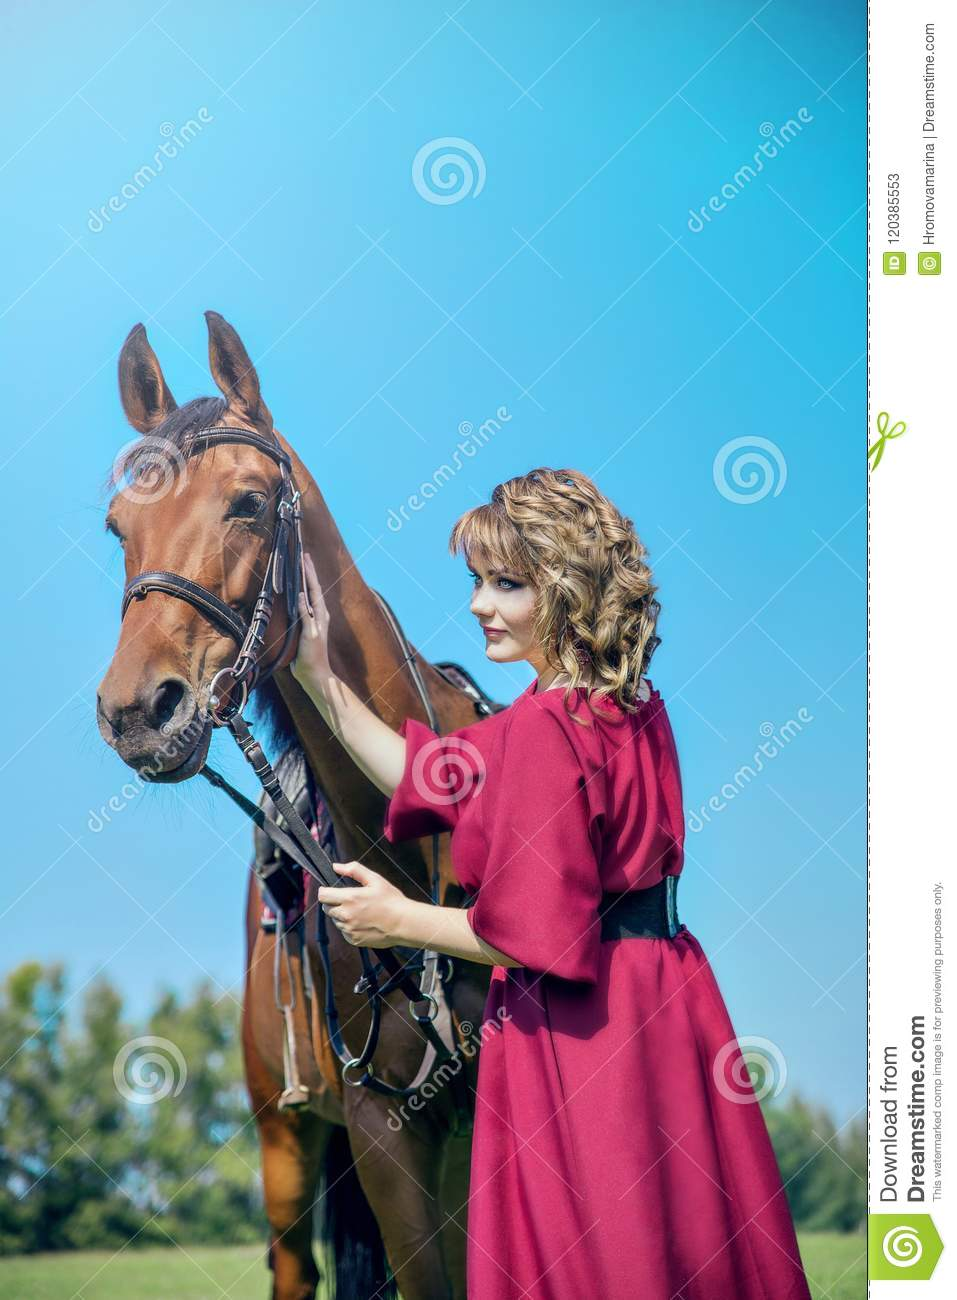 Beautiful yong womanl and horse